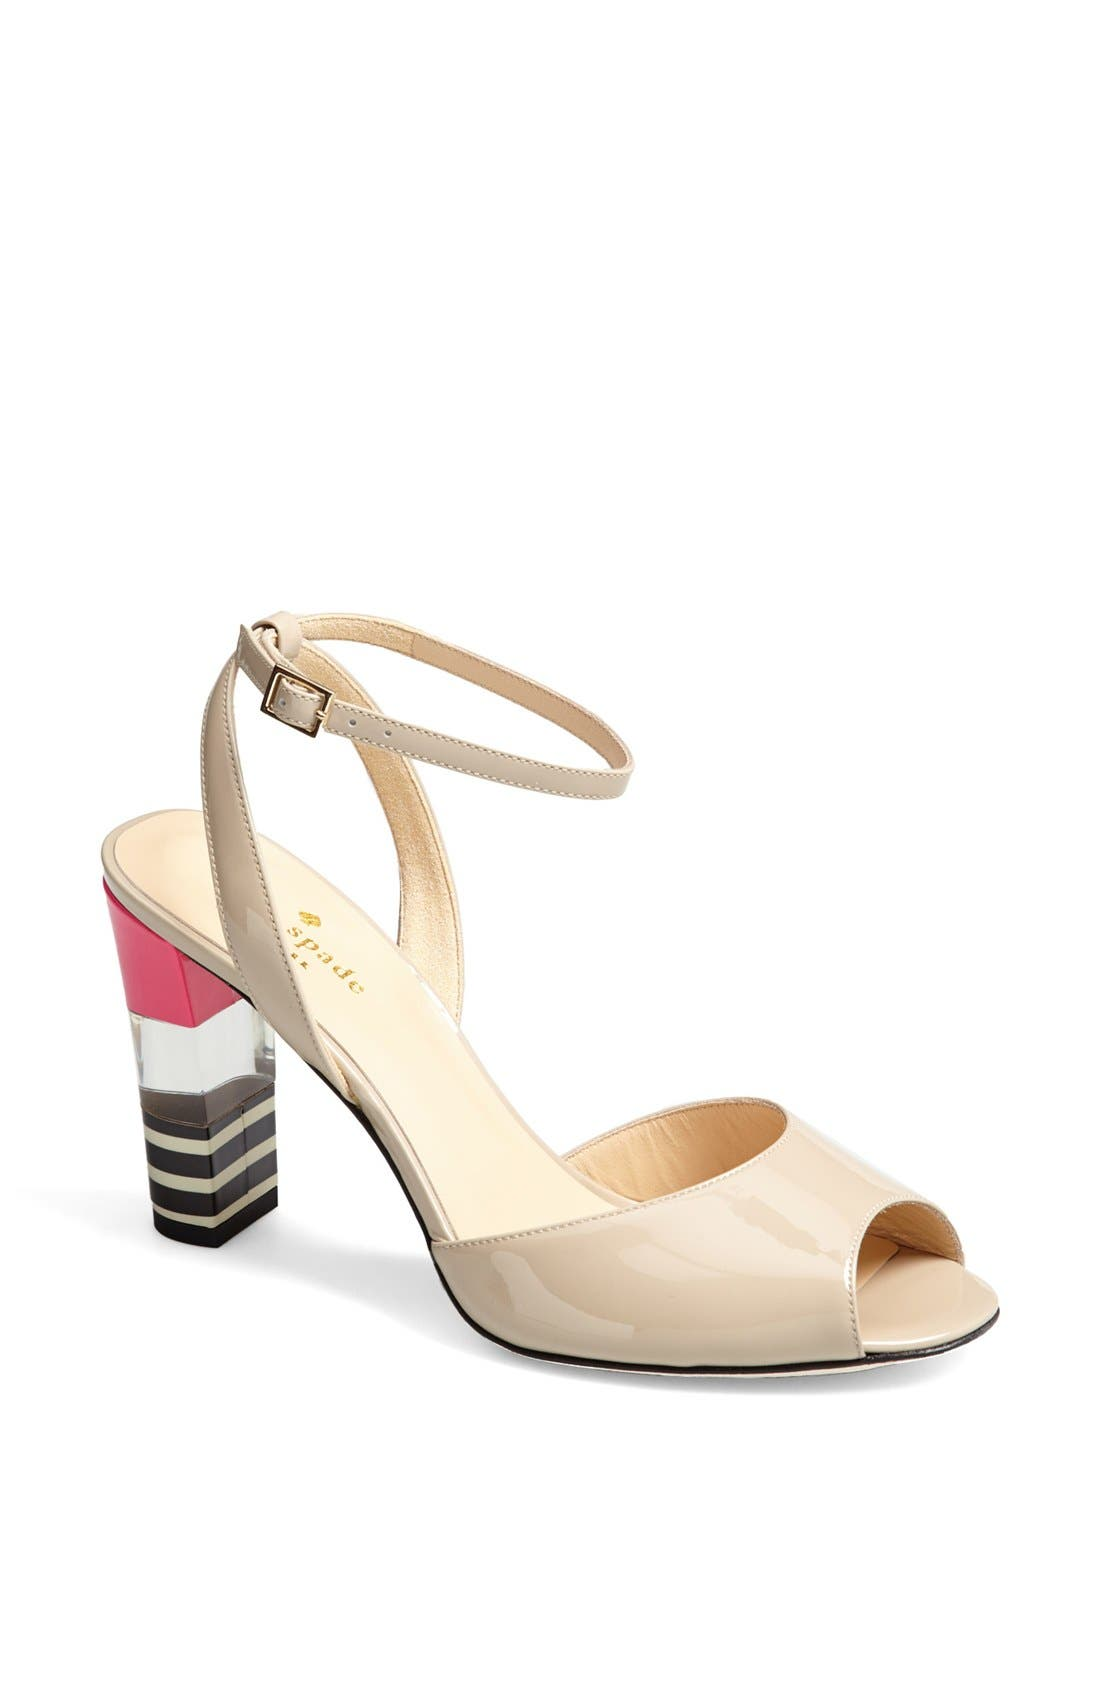 Main Image - kate spade new york 'ice' leather sandal